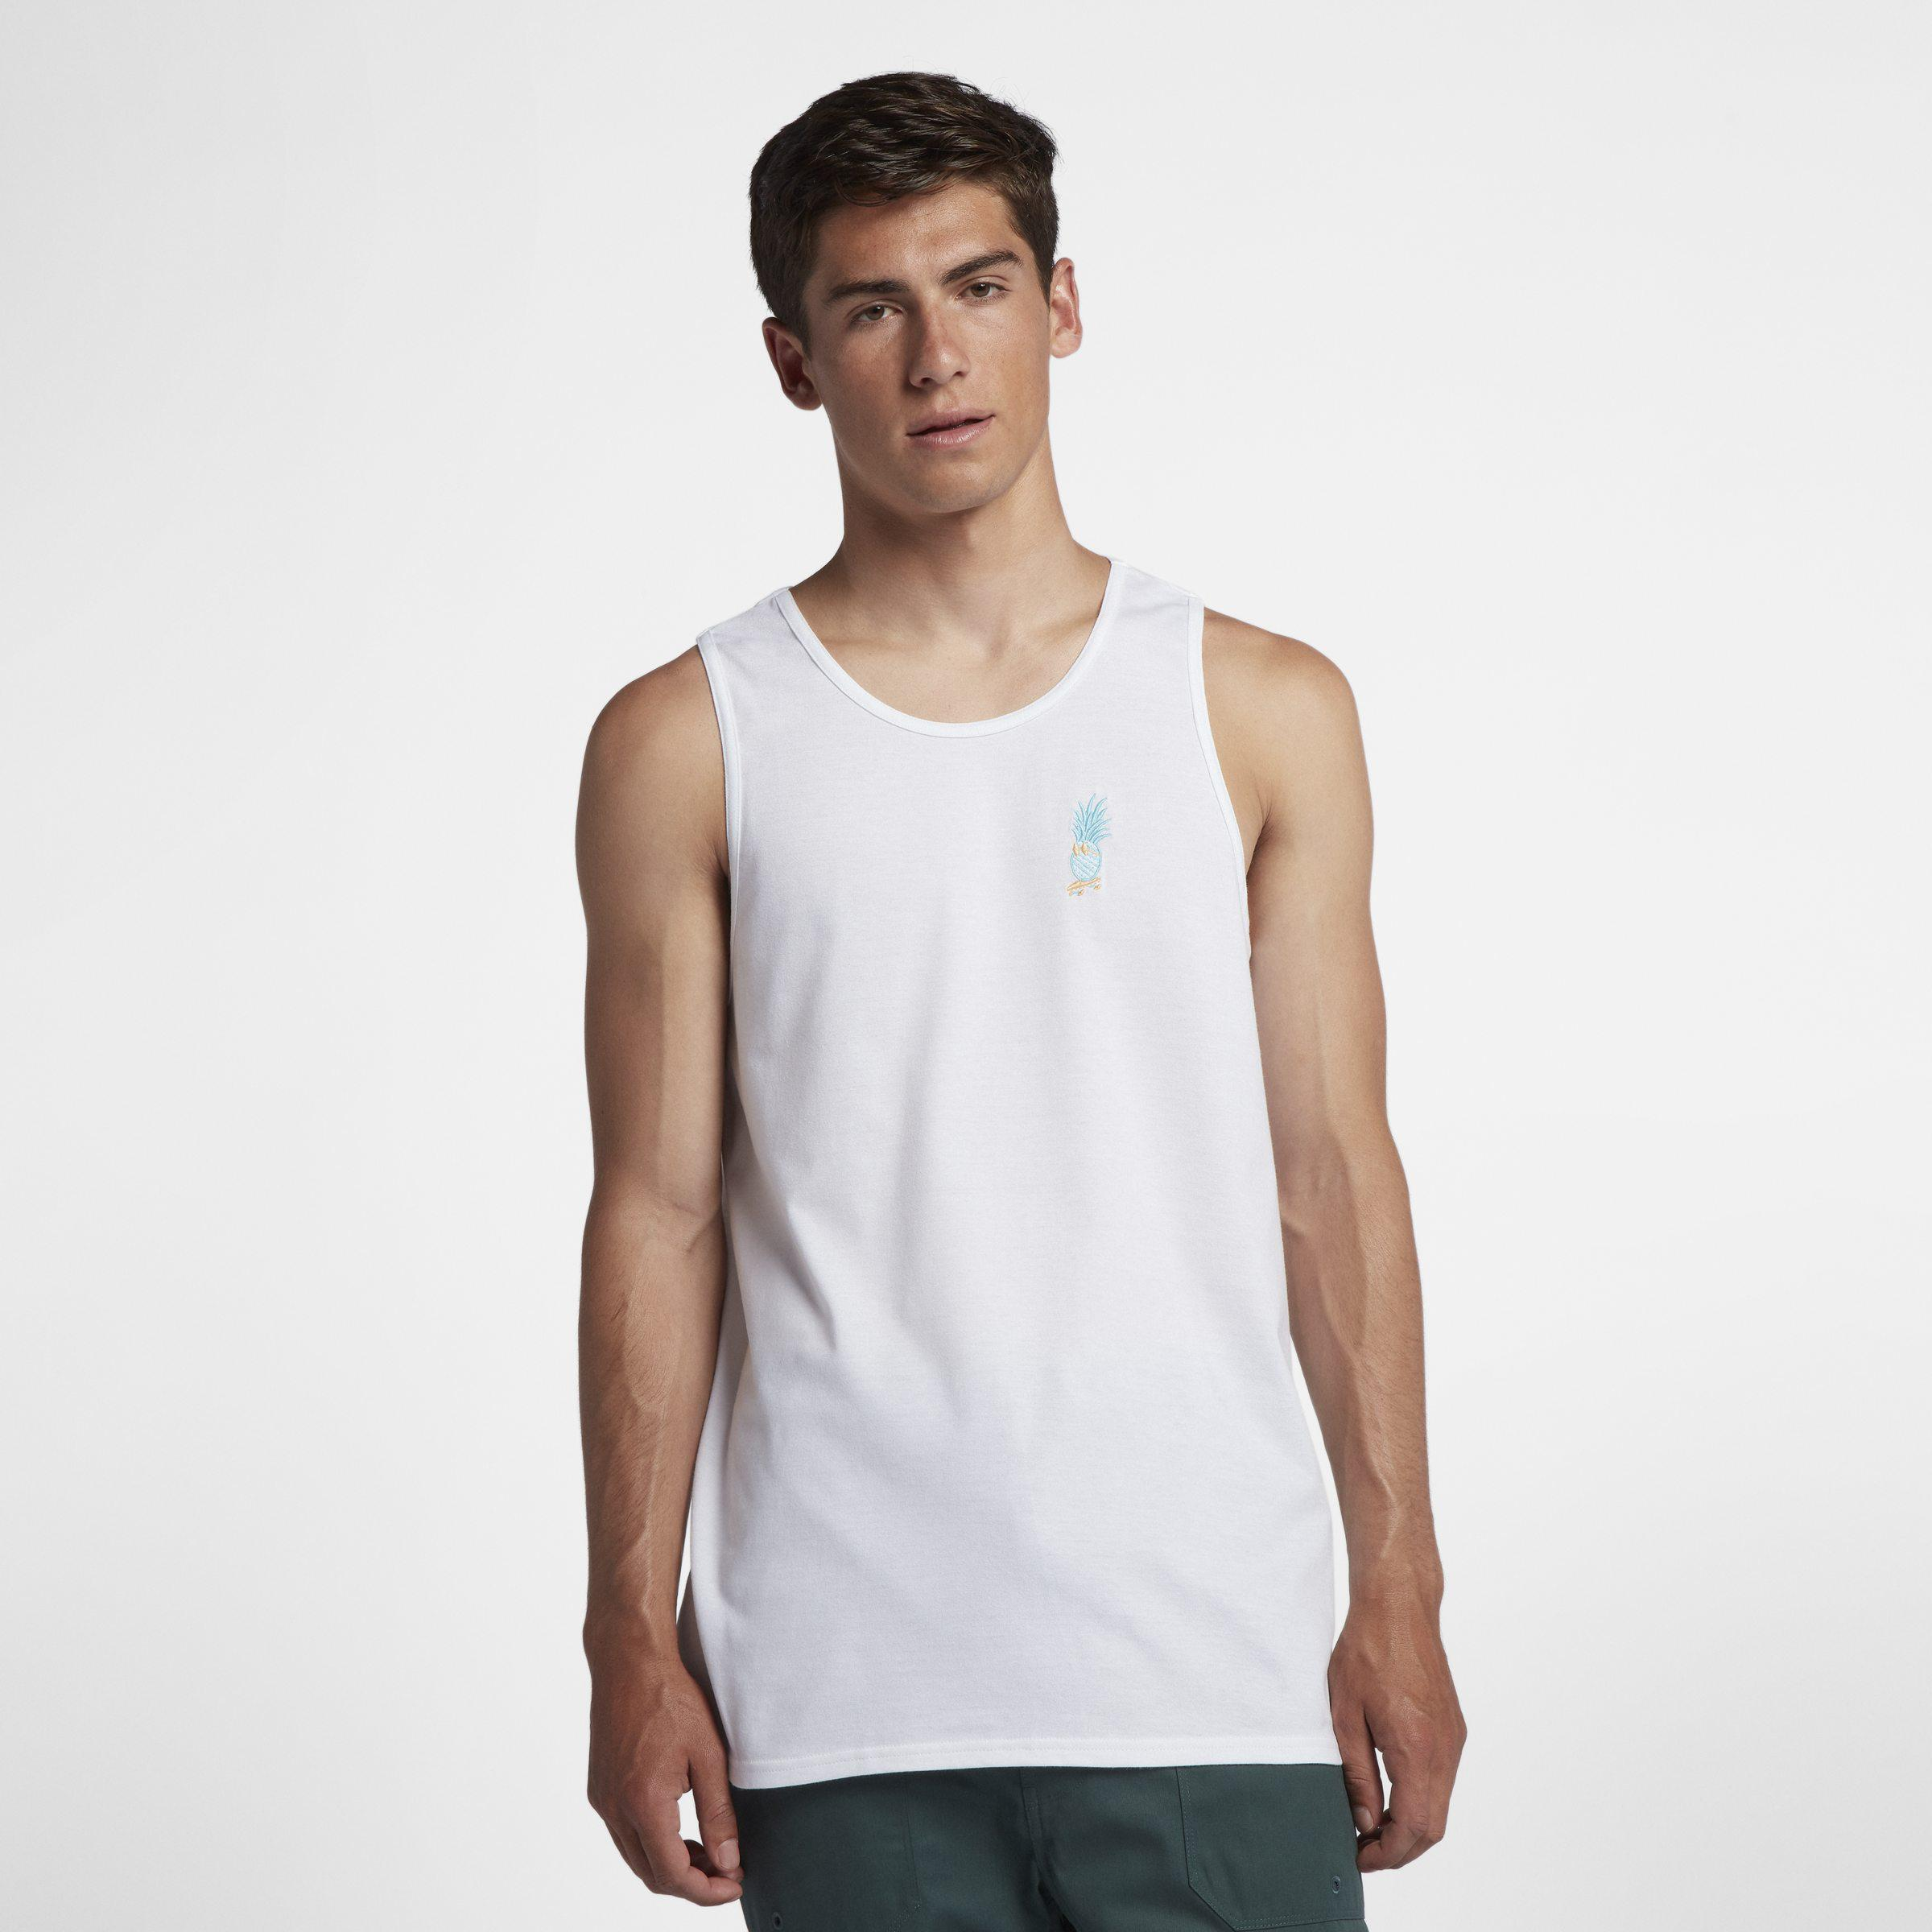 77662e7c0916c6 Nike Hurley Premium Juicy Vibe Tank in White for Men - Lyst